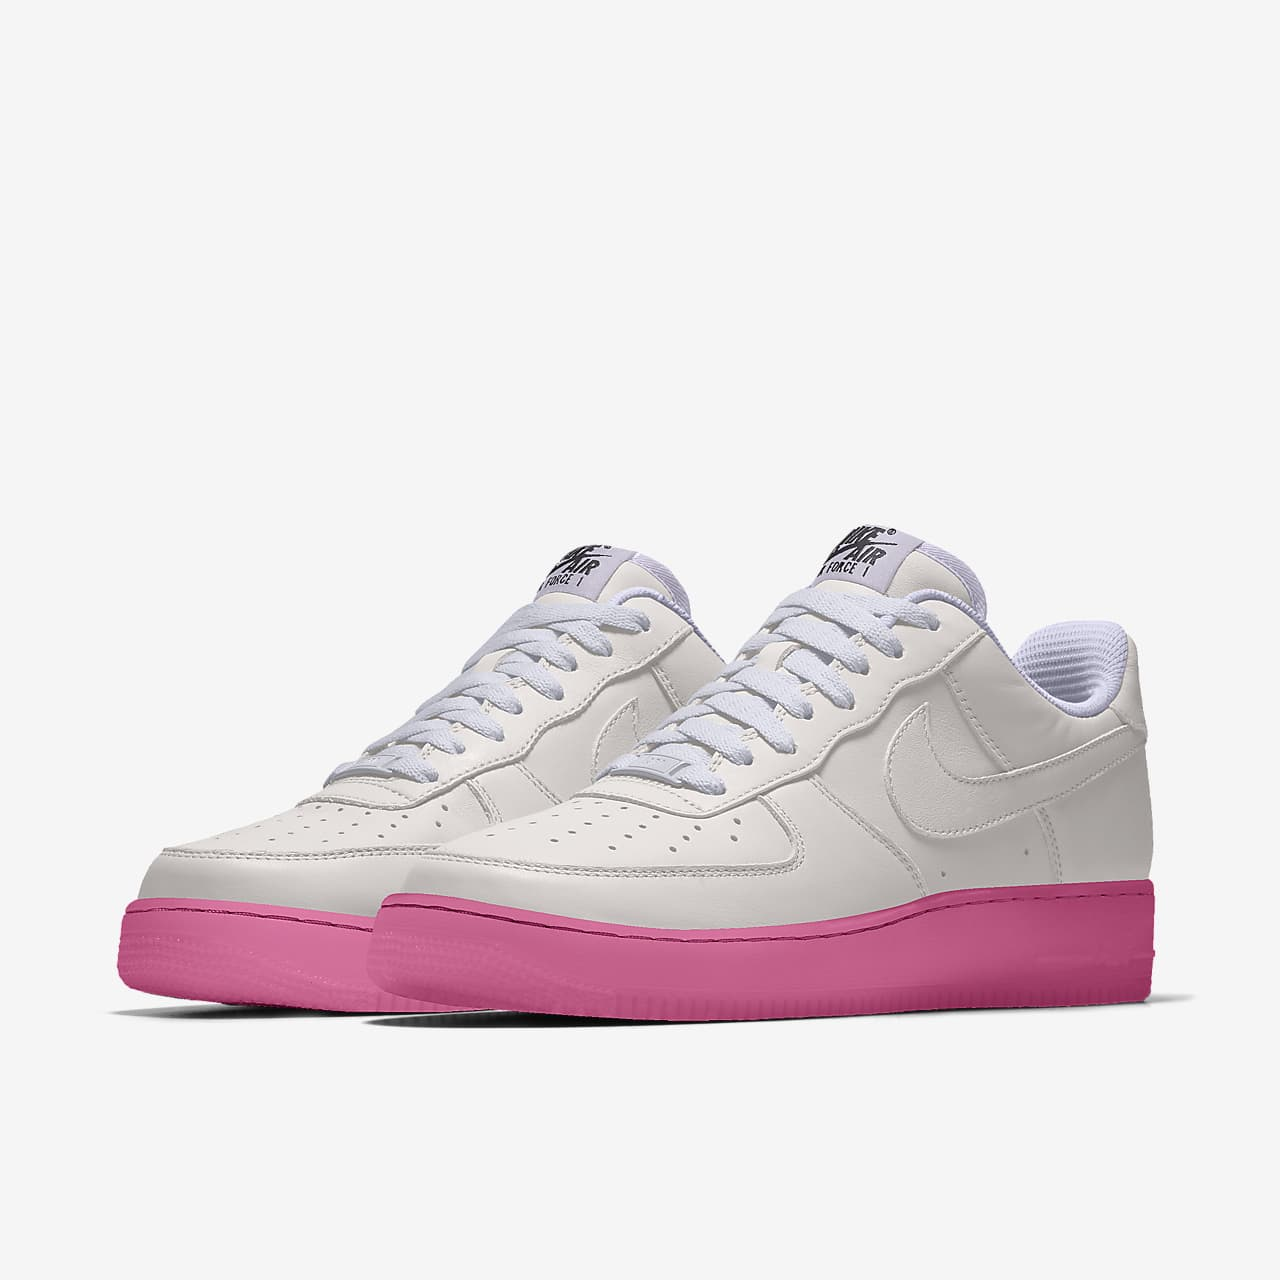 Scarpa personalizzabile Nike Air Force 1 Low By You - Donna. Nike IT